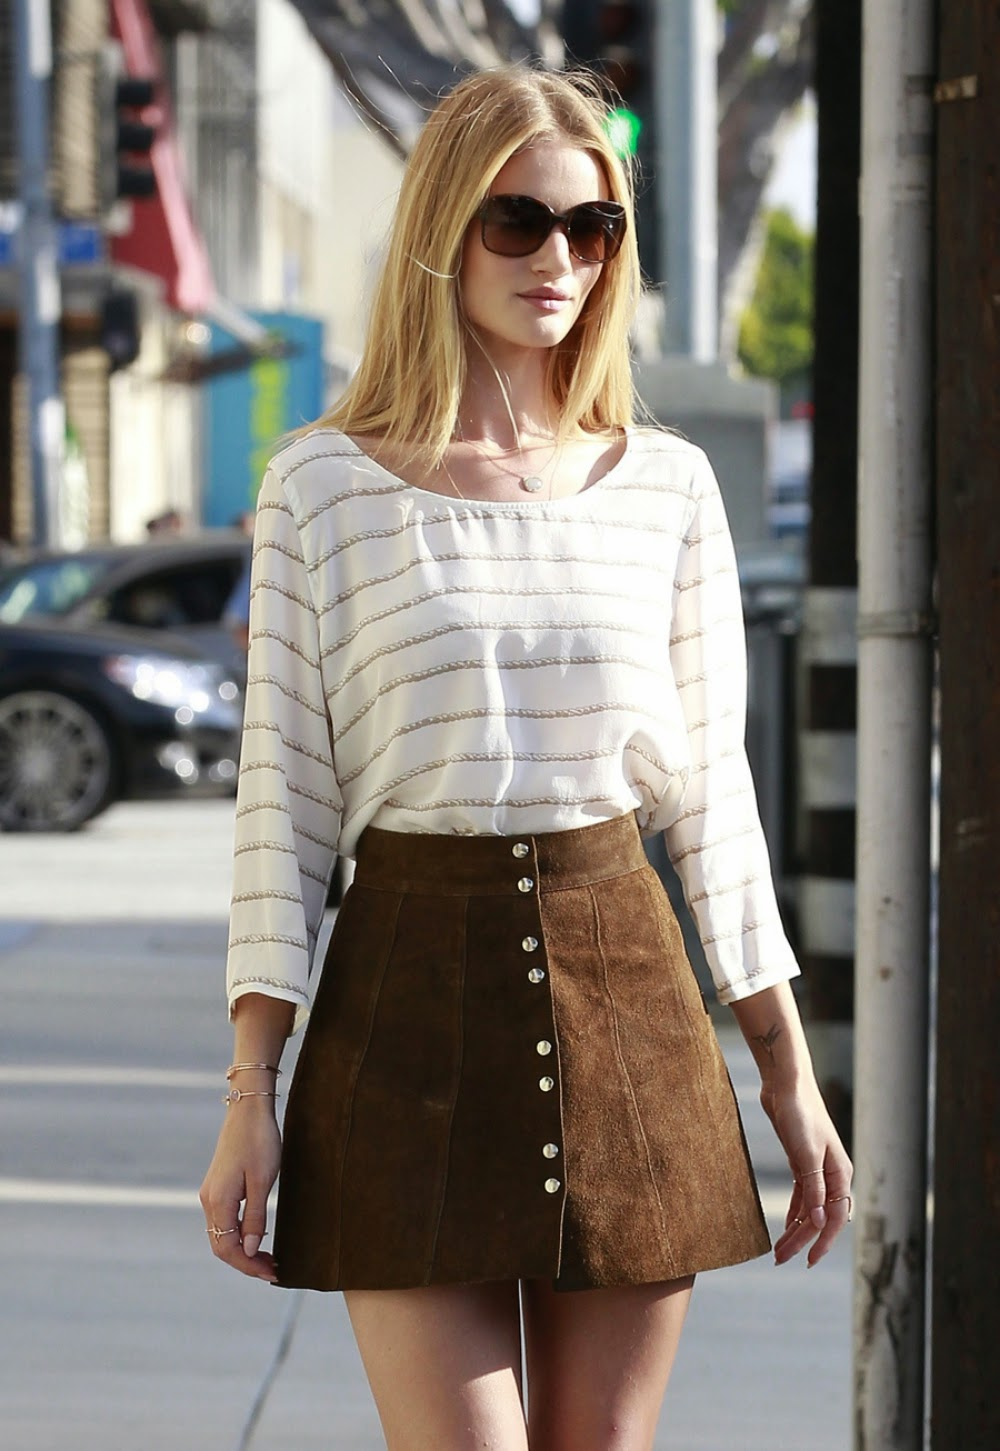 Style Inspiration: 70s Button-Front Skirts